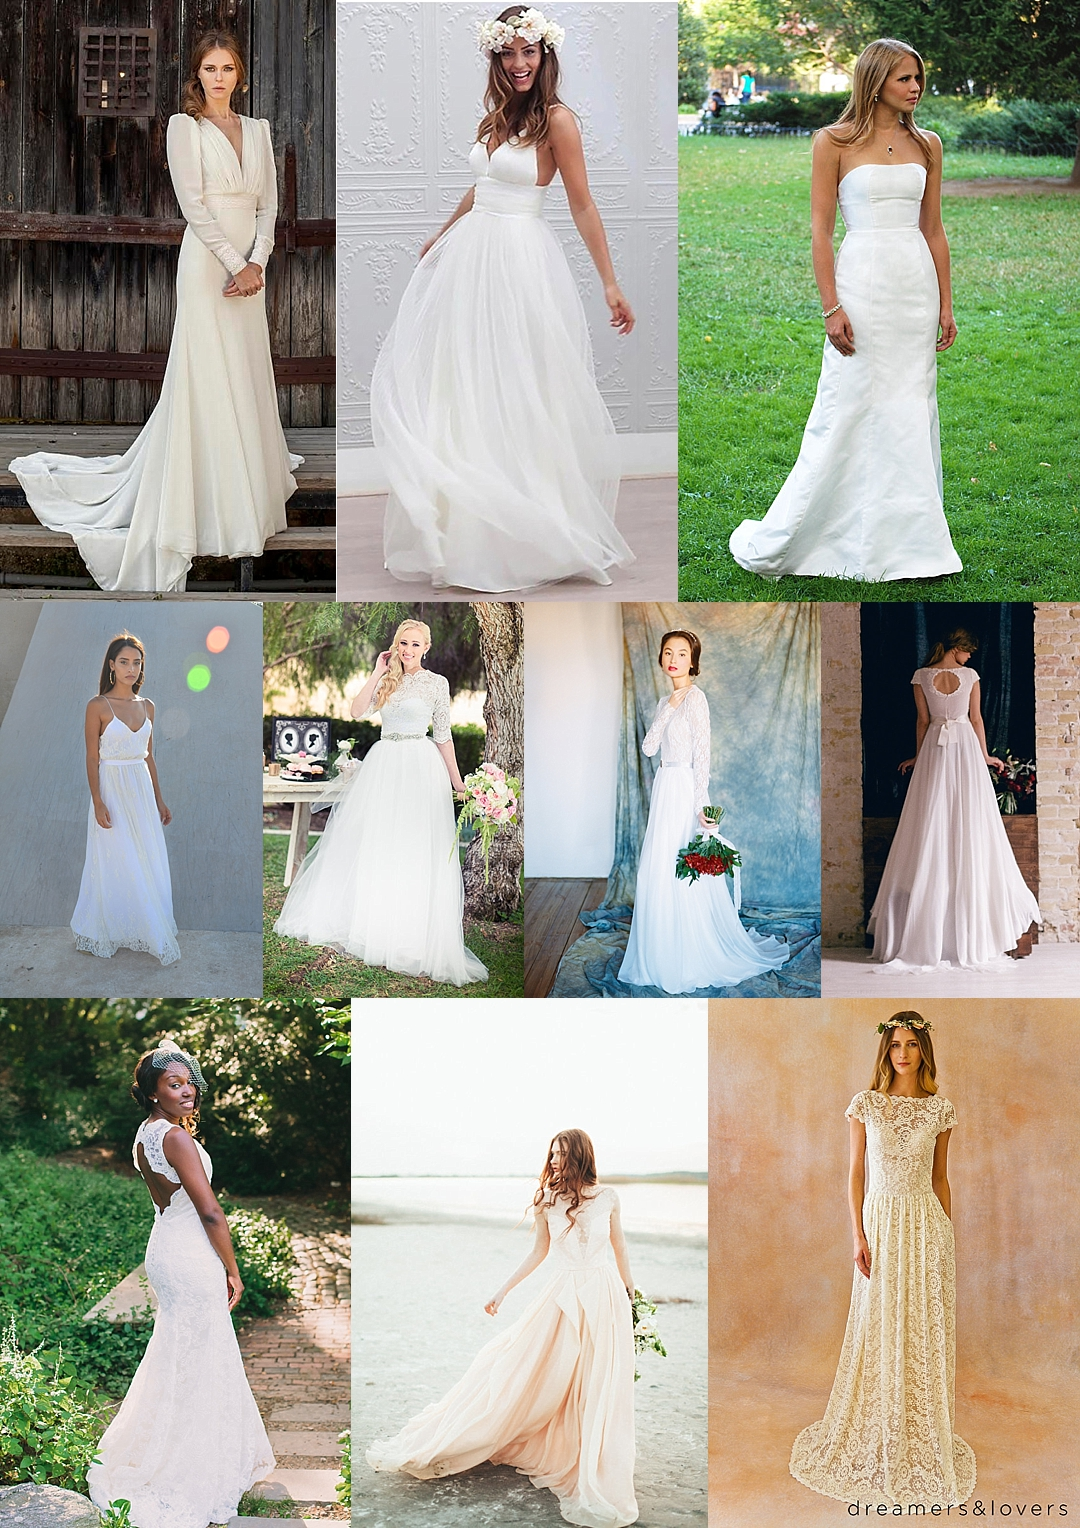 10 gorgeous wedding gowns under $1000 from etsy | the budget savvy